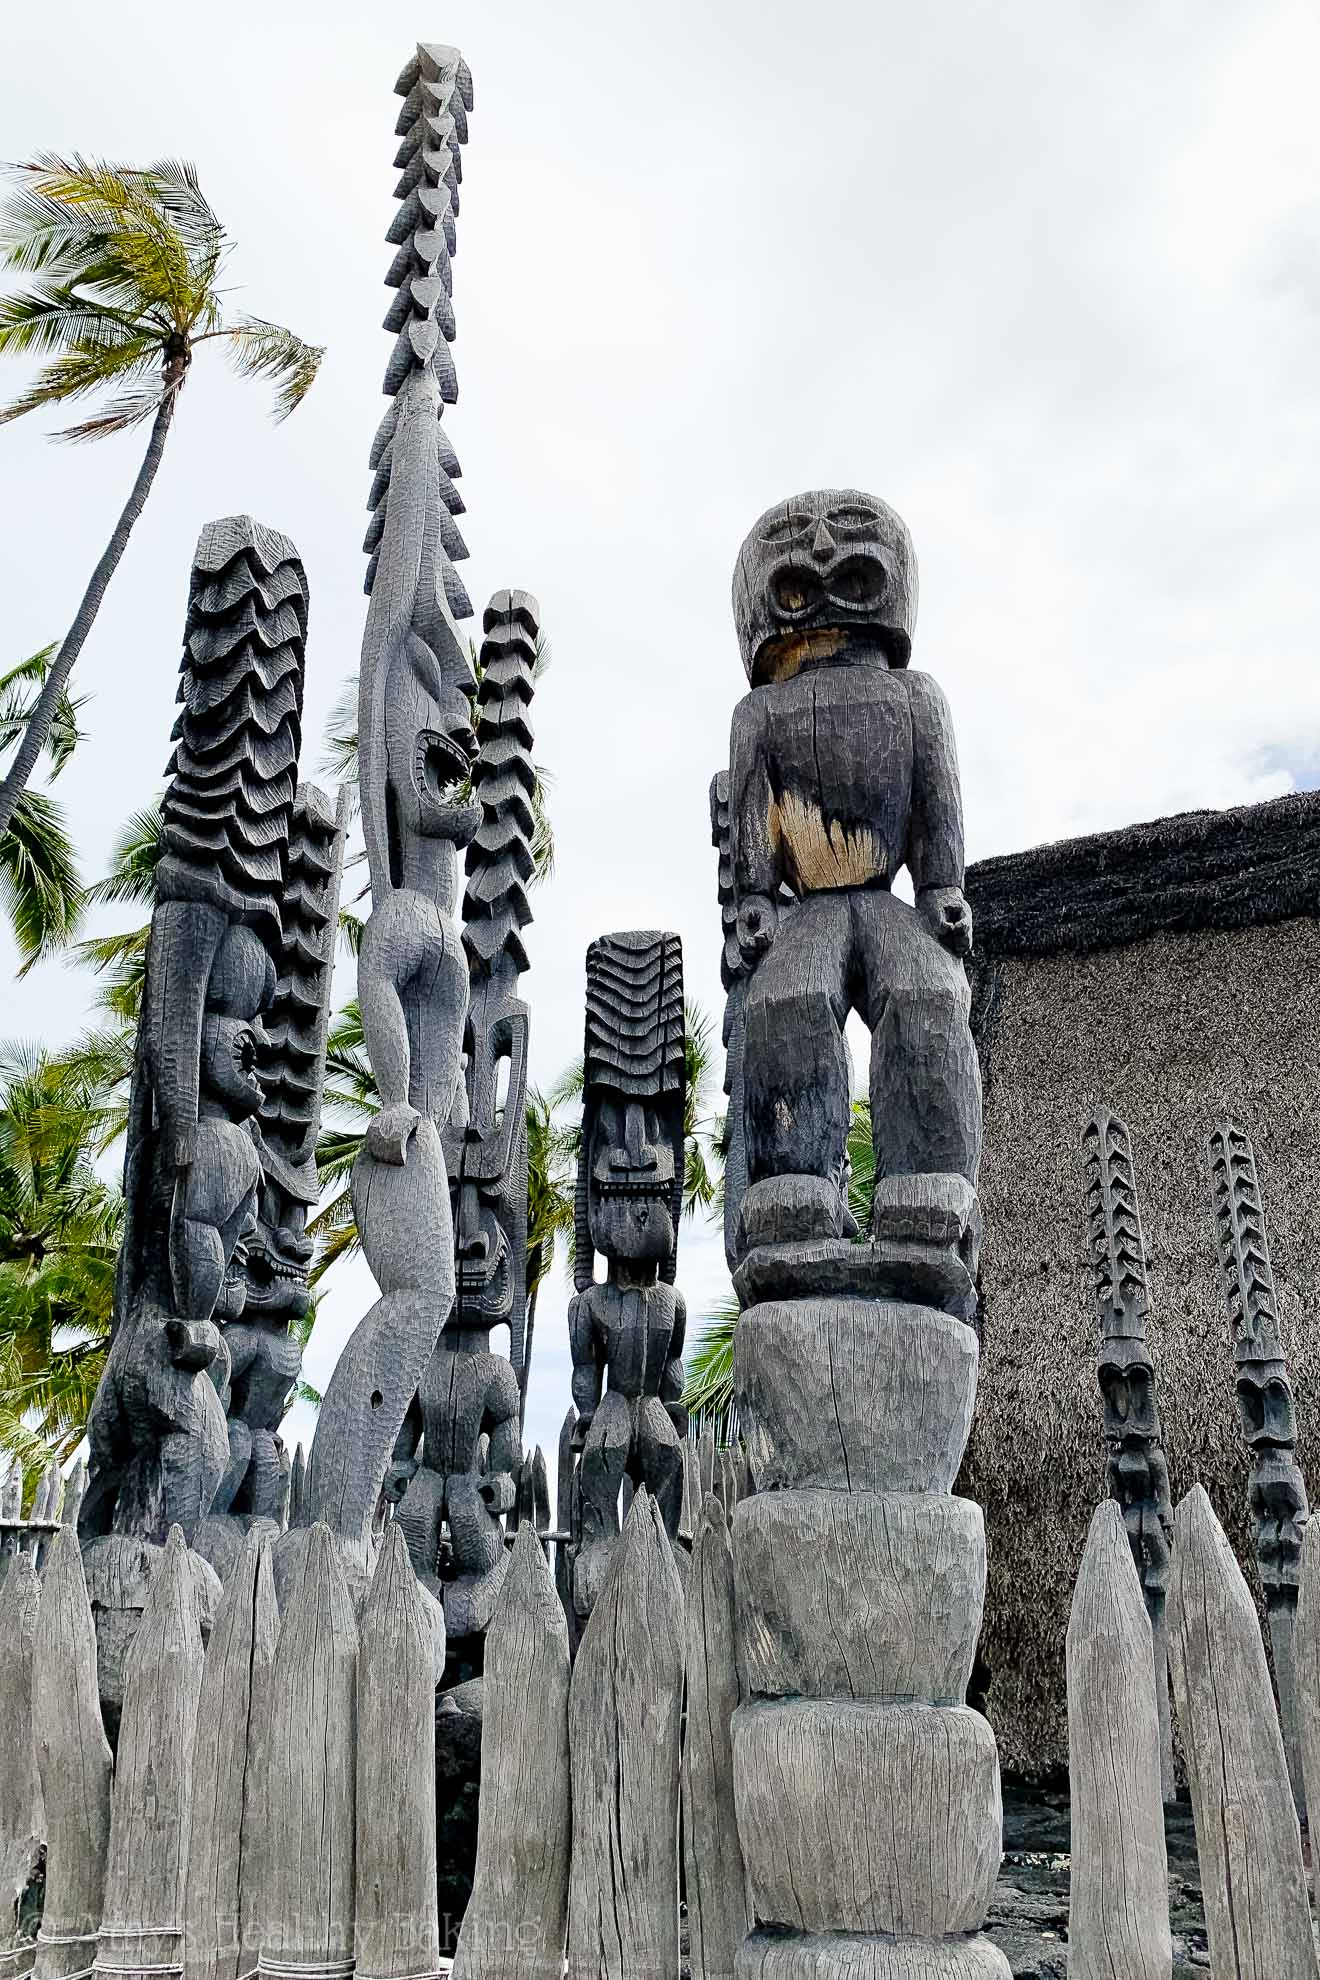 Ki'i wooden statues at the Place of Refuge on the Big Island of Hawaii